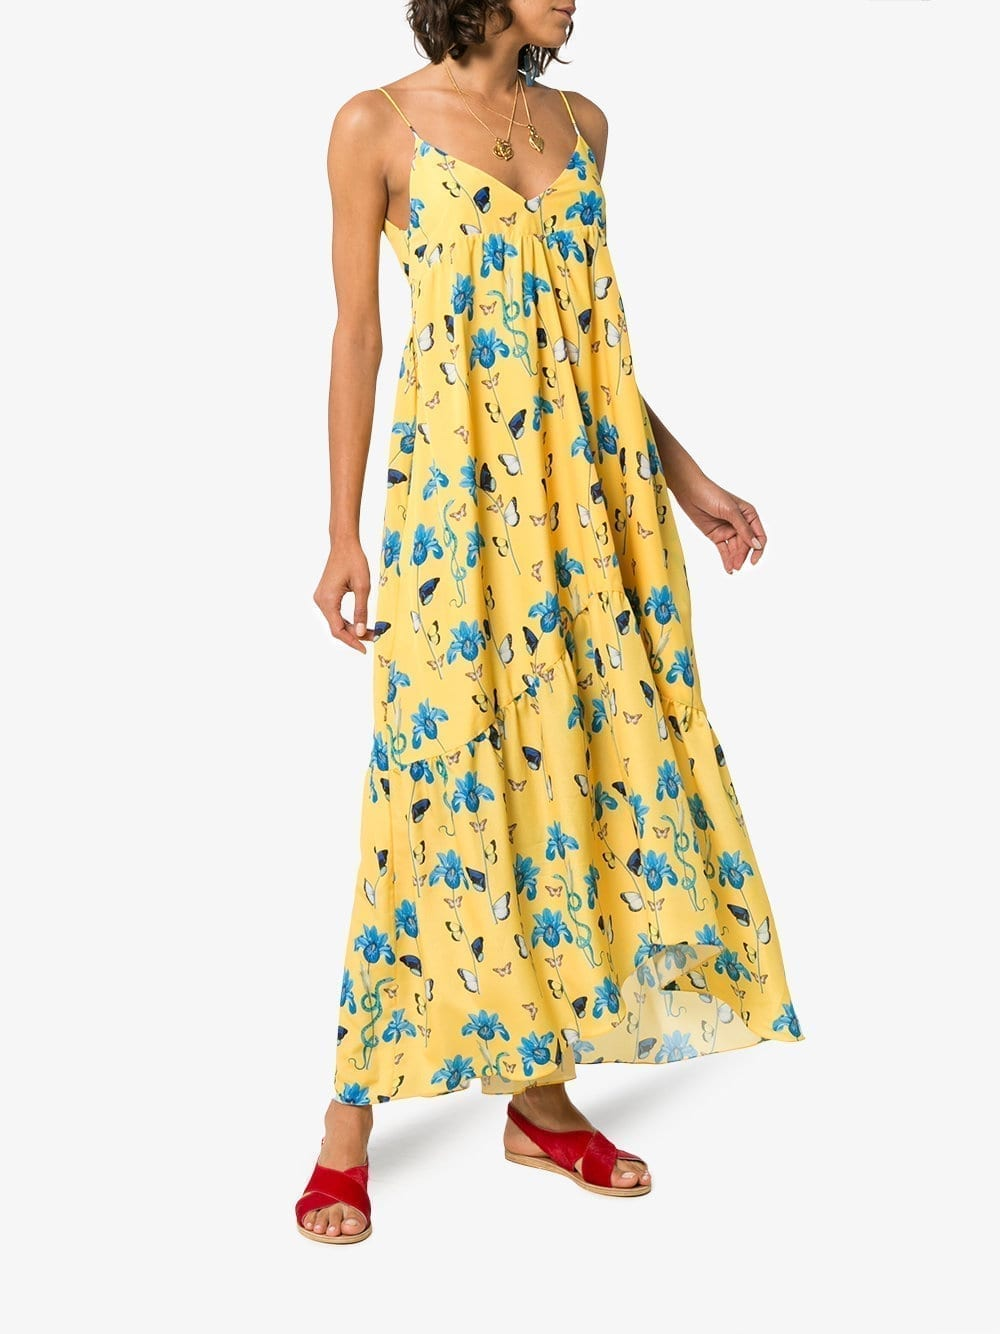 BORGO DE NOR Anais Yellow / Floral Printed Dress